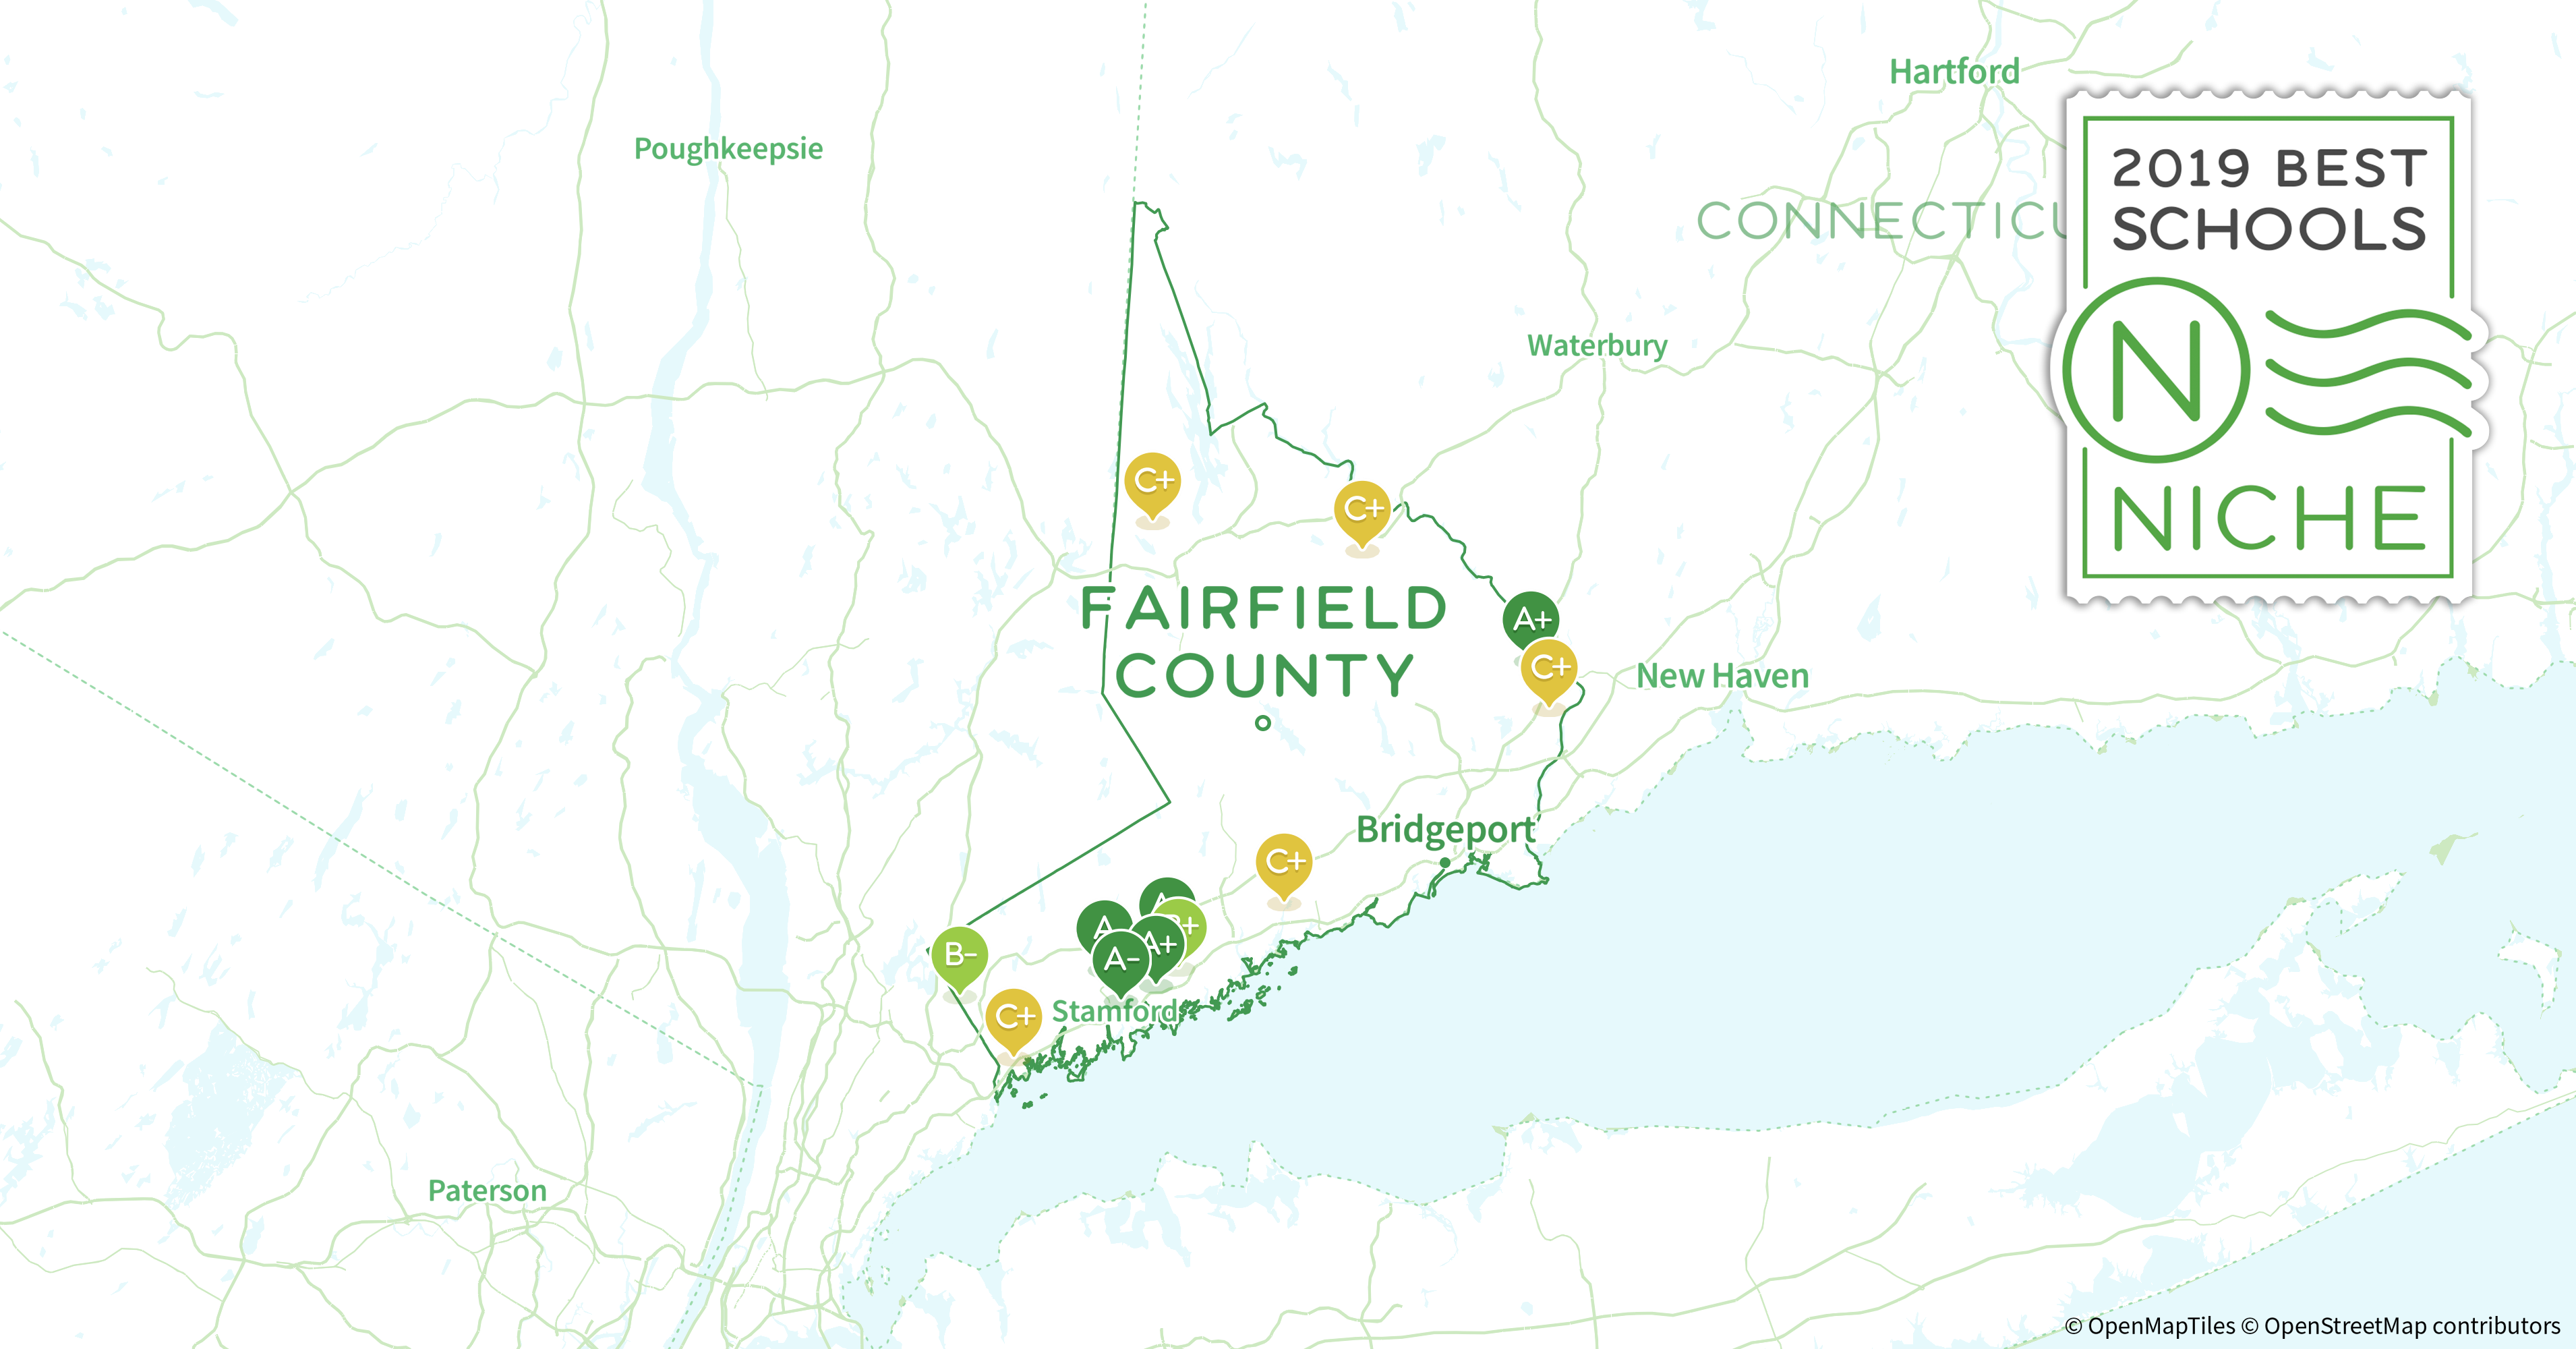 School Districts in Fairfield County, CT - Niche